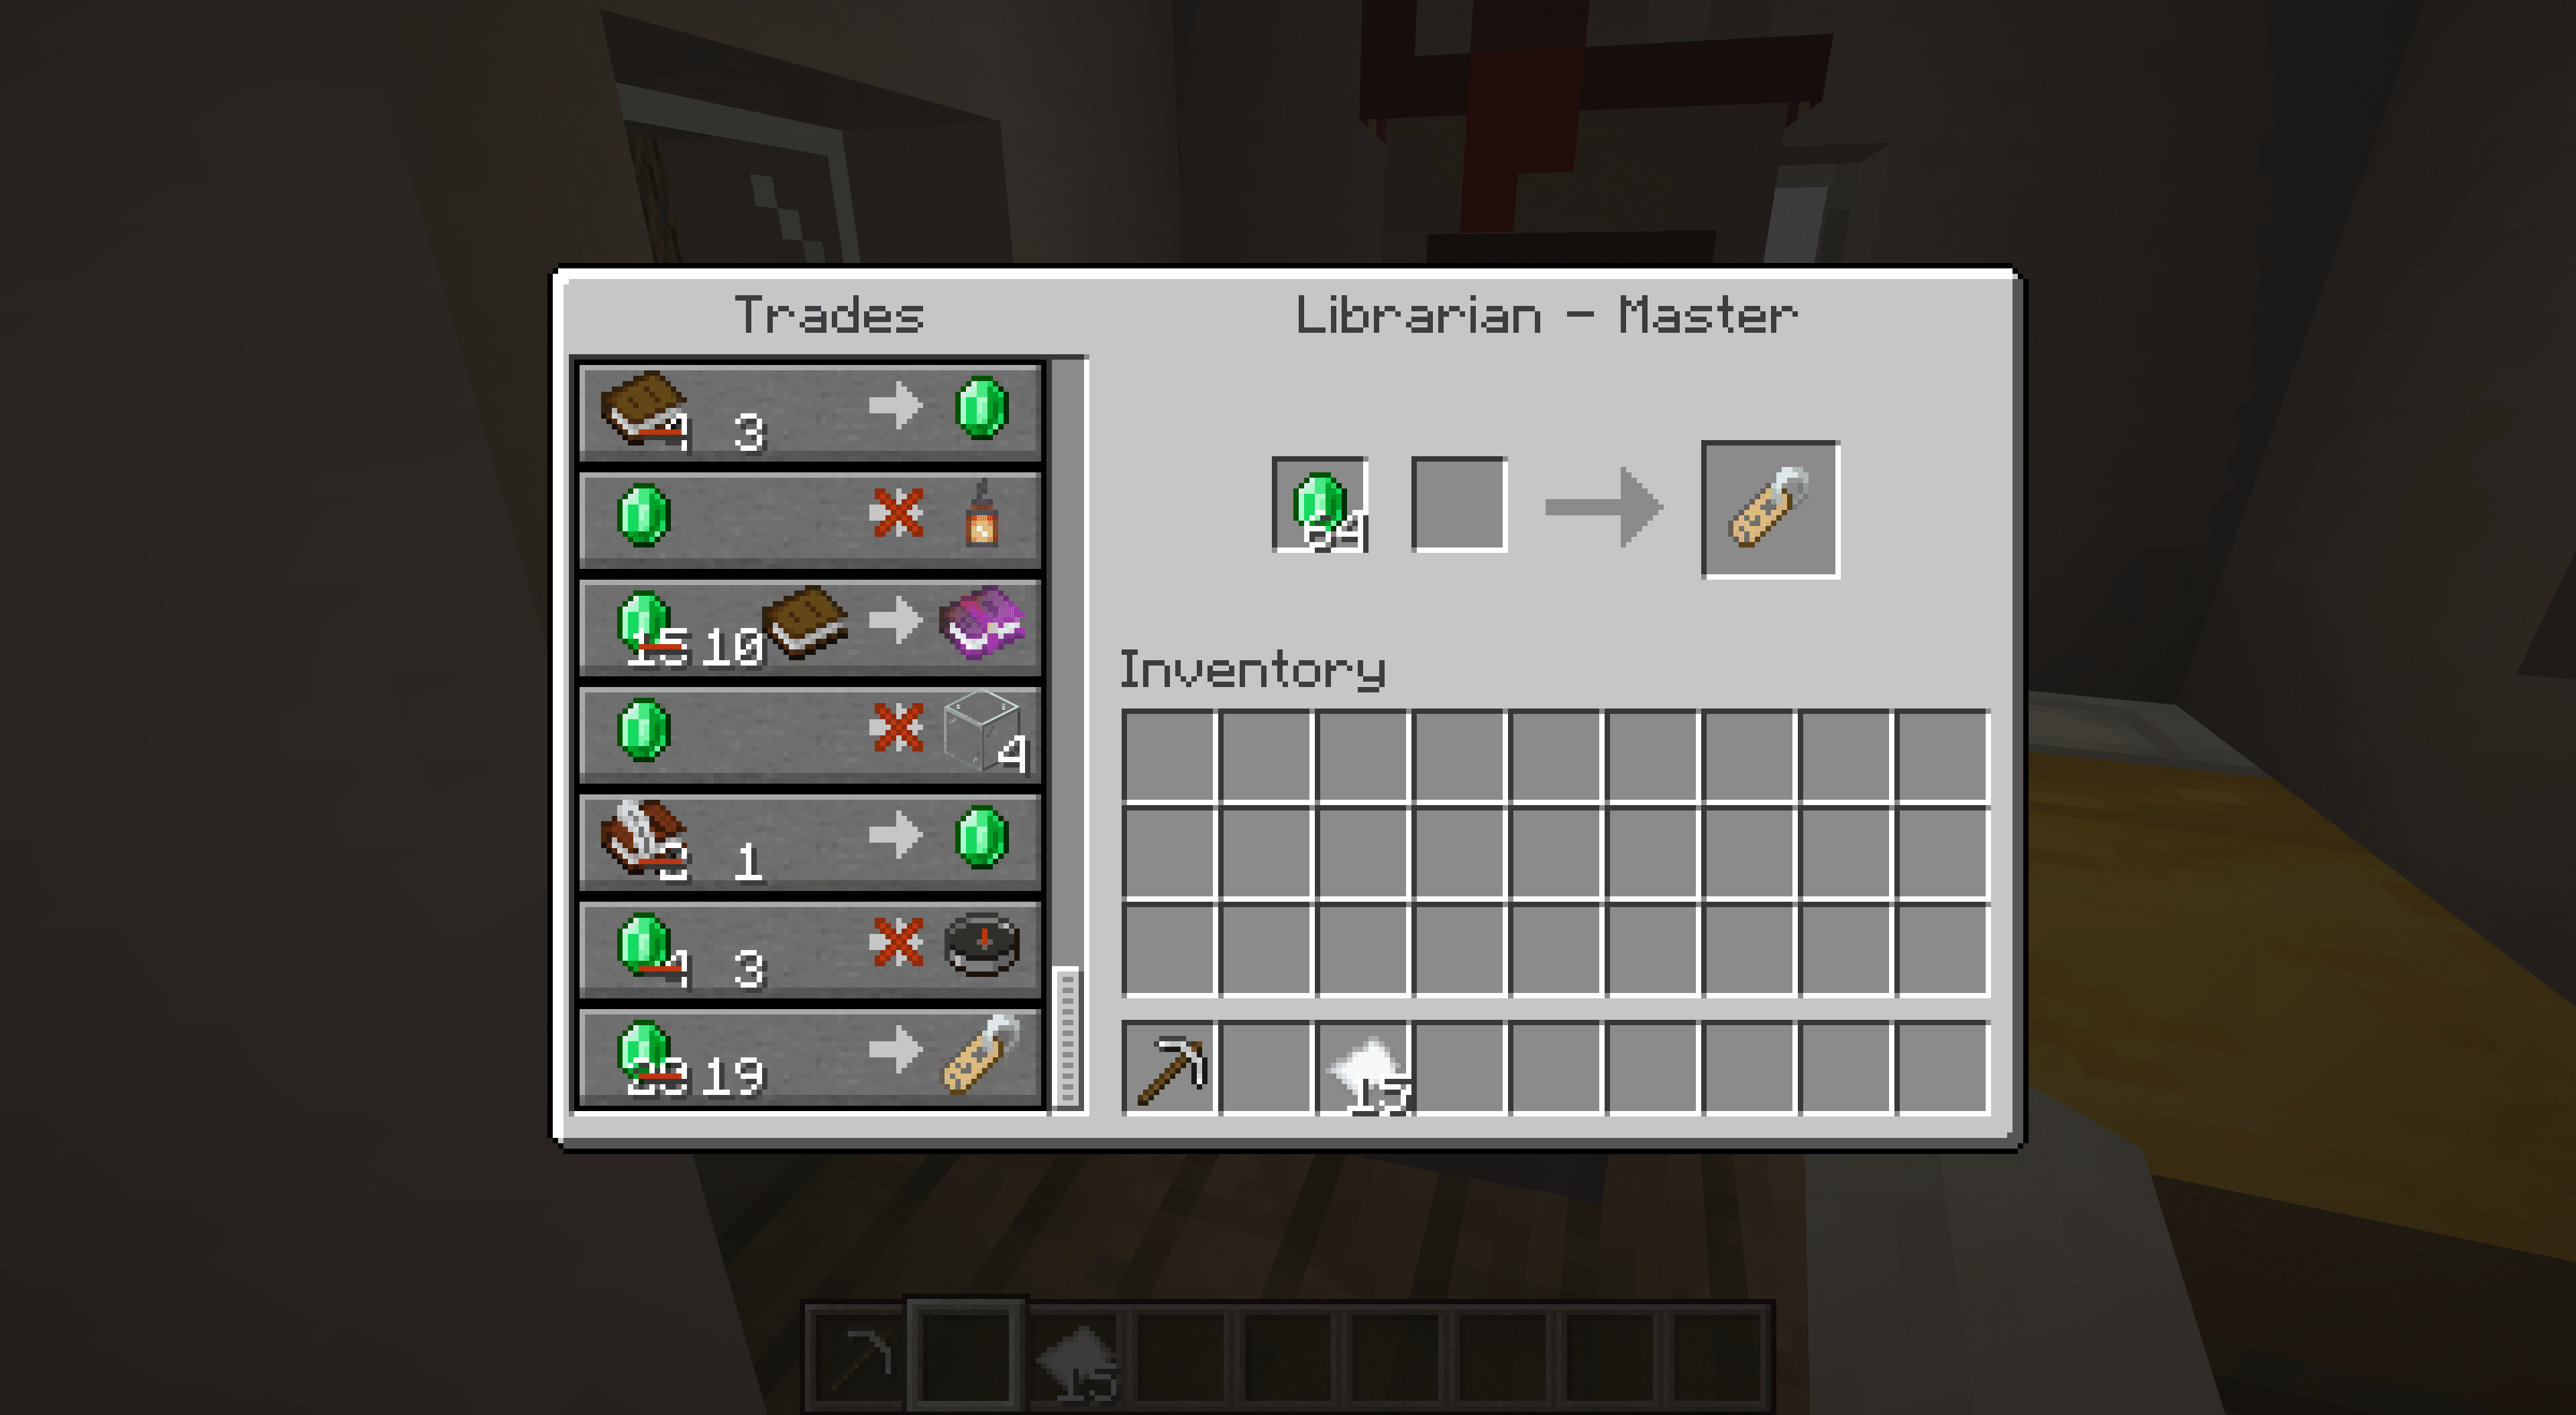 Trading a master librarian for a name tag in Minecraft.